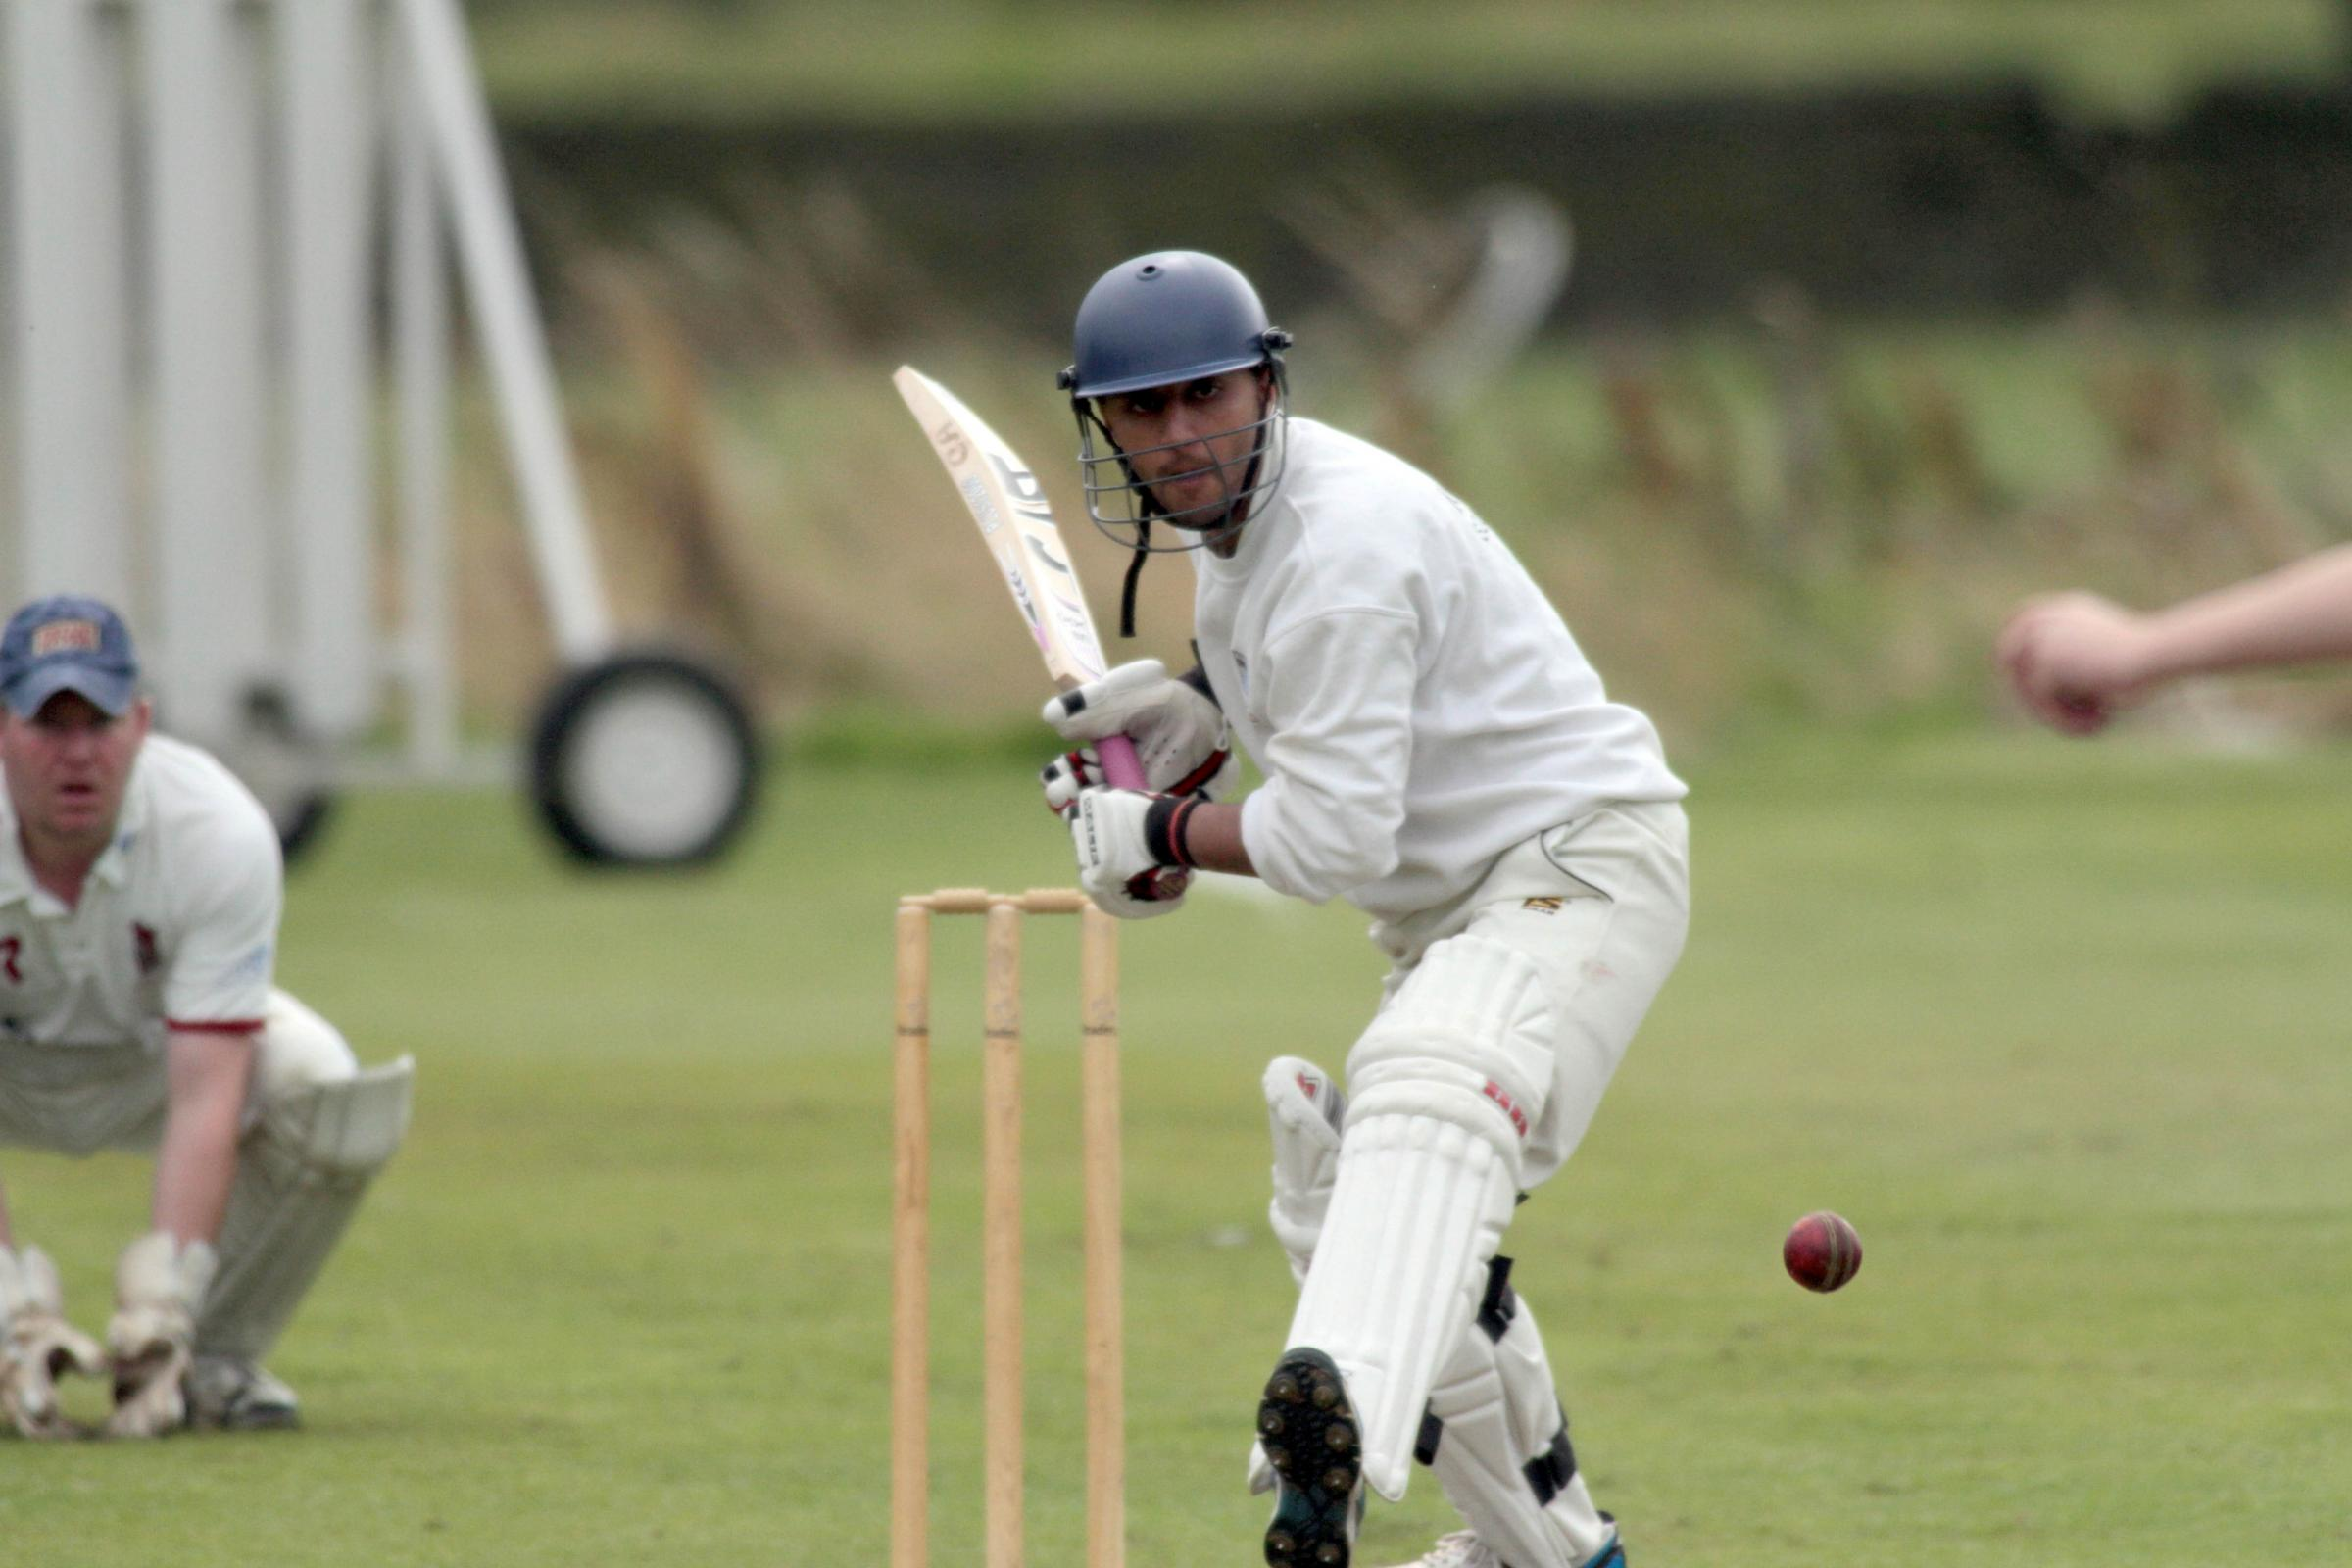 Mohammed Waqas made 36 for Barrowford in the Cowling Cup final